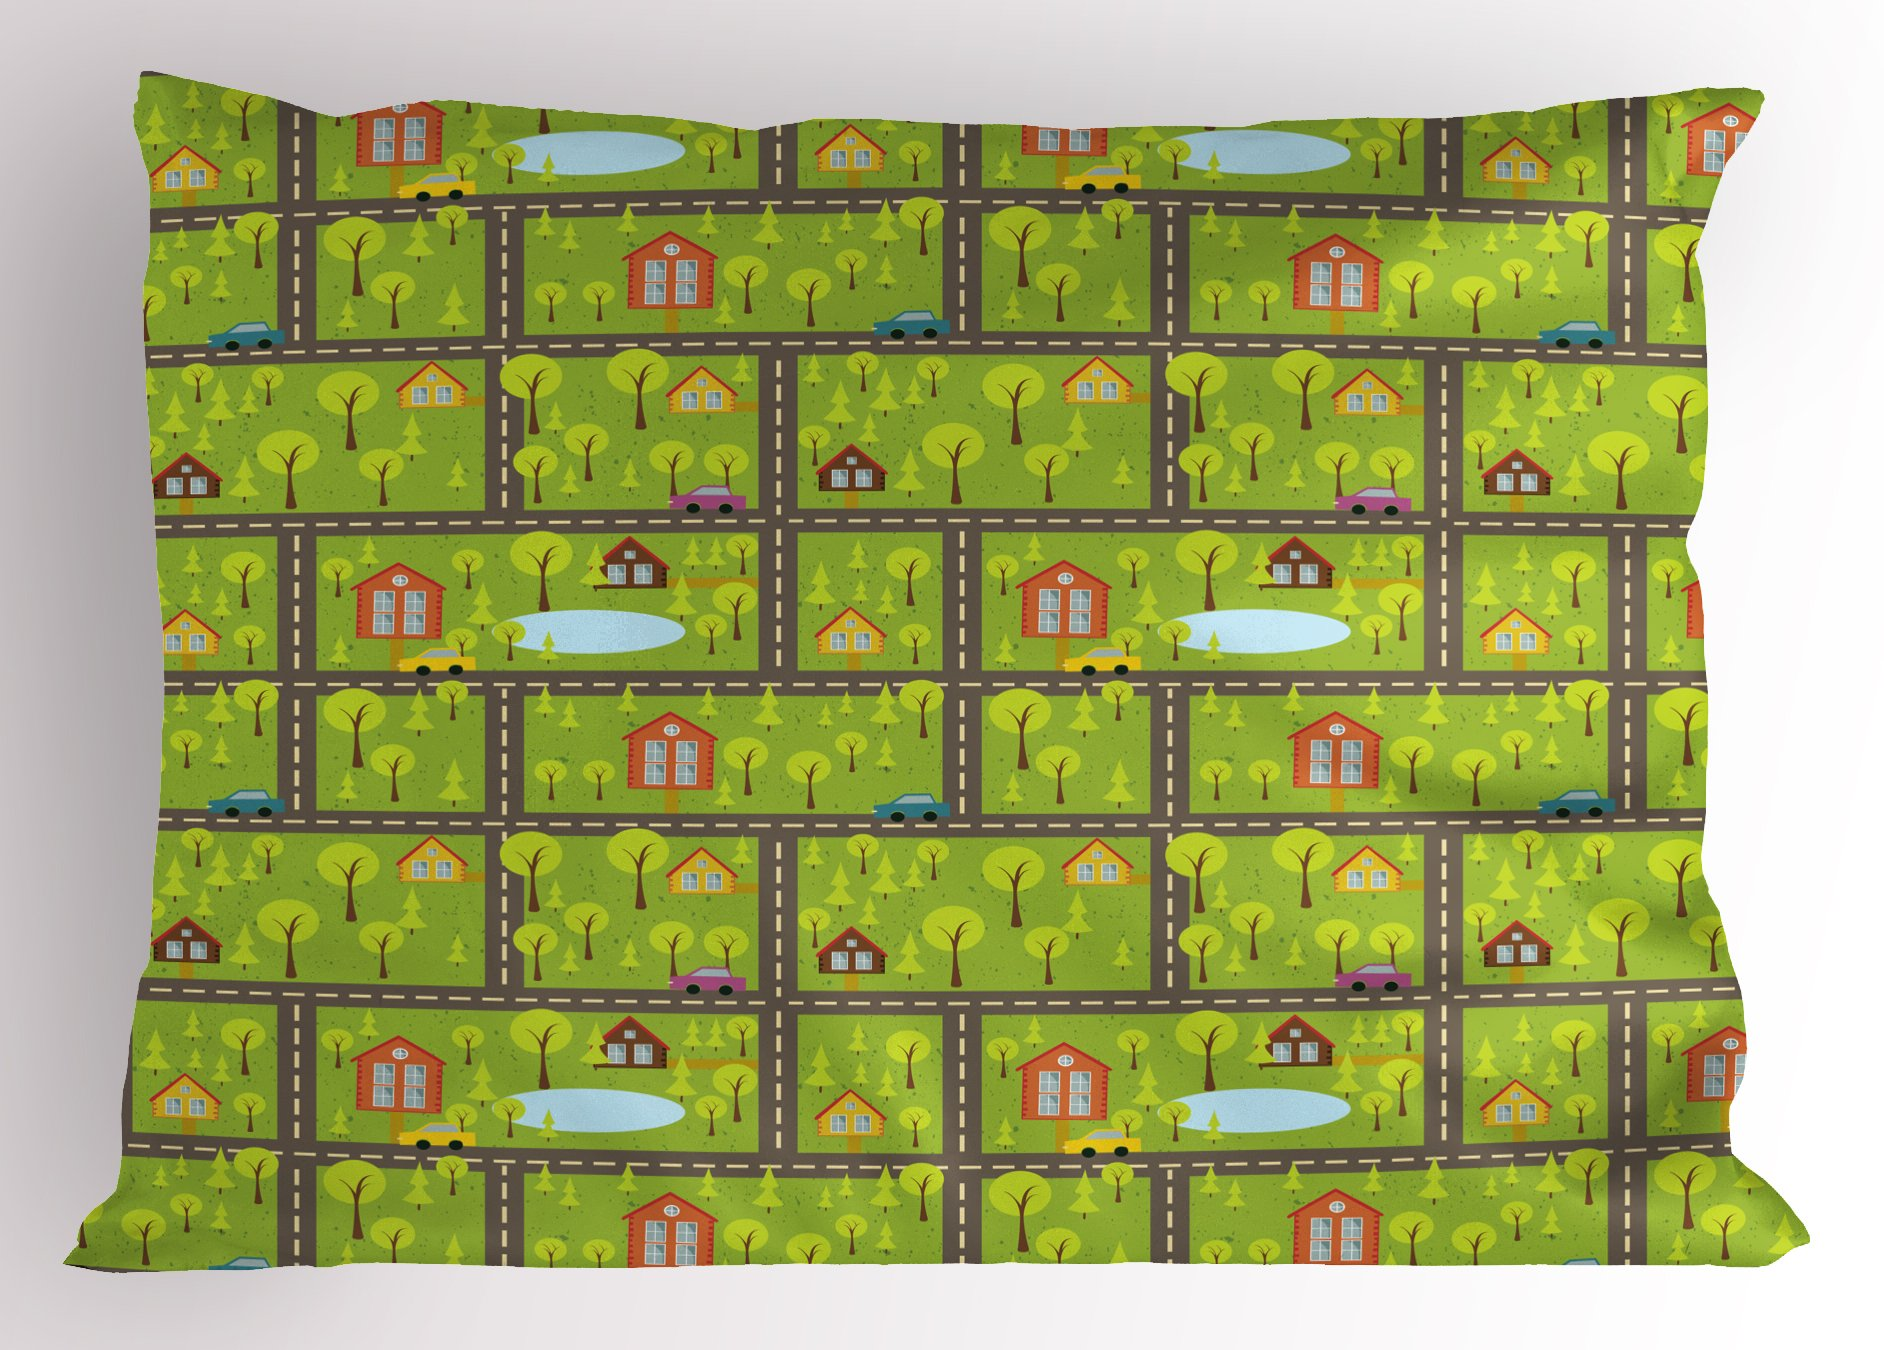 Lunarable Children's City Map Pillow Sham, Country Houses in The Woods Residential Area in The Spring Fir Trees, Decorative Standard Queen Size Printed Pillowcase, 30 X 20 inches, Multicolor